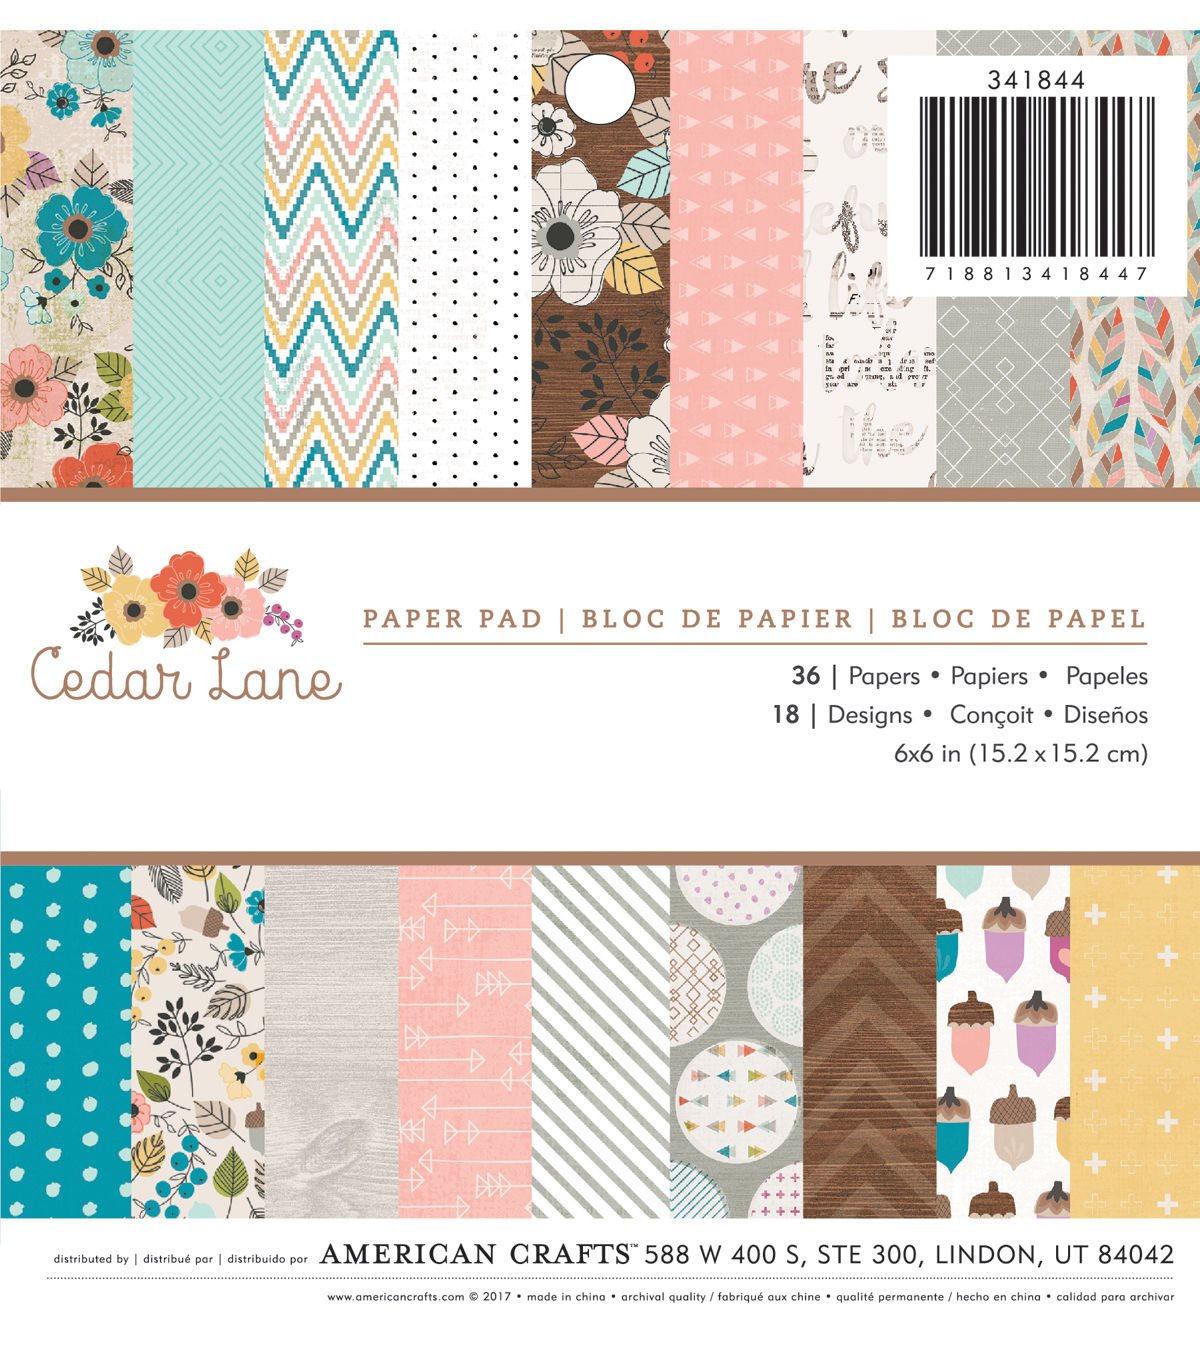 American Crafts 36 Pack 6''x6'' Paper Pad Cedar Lane in